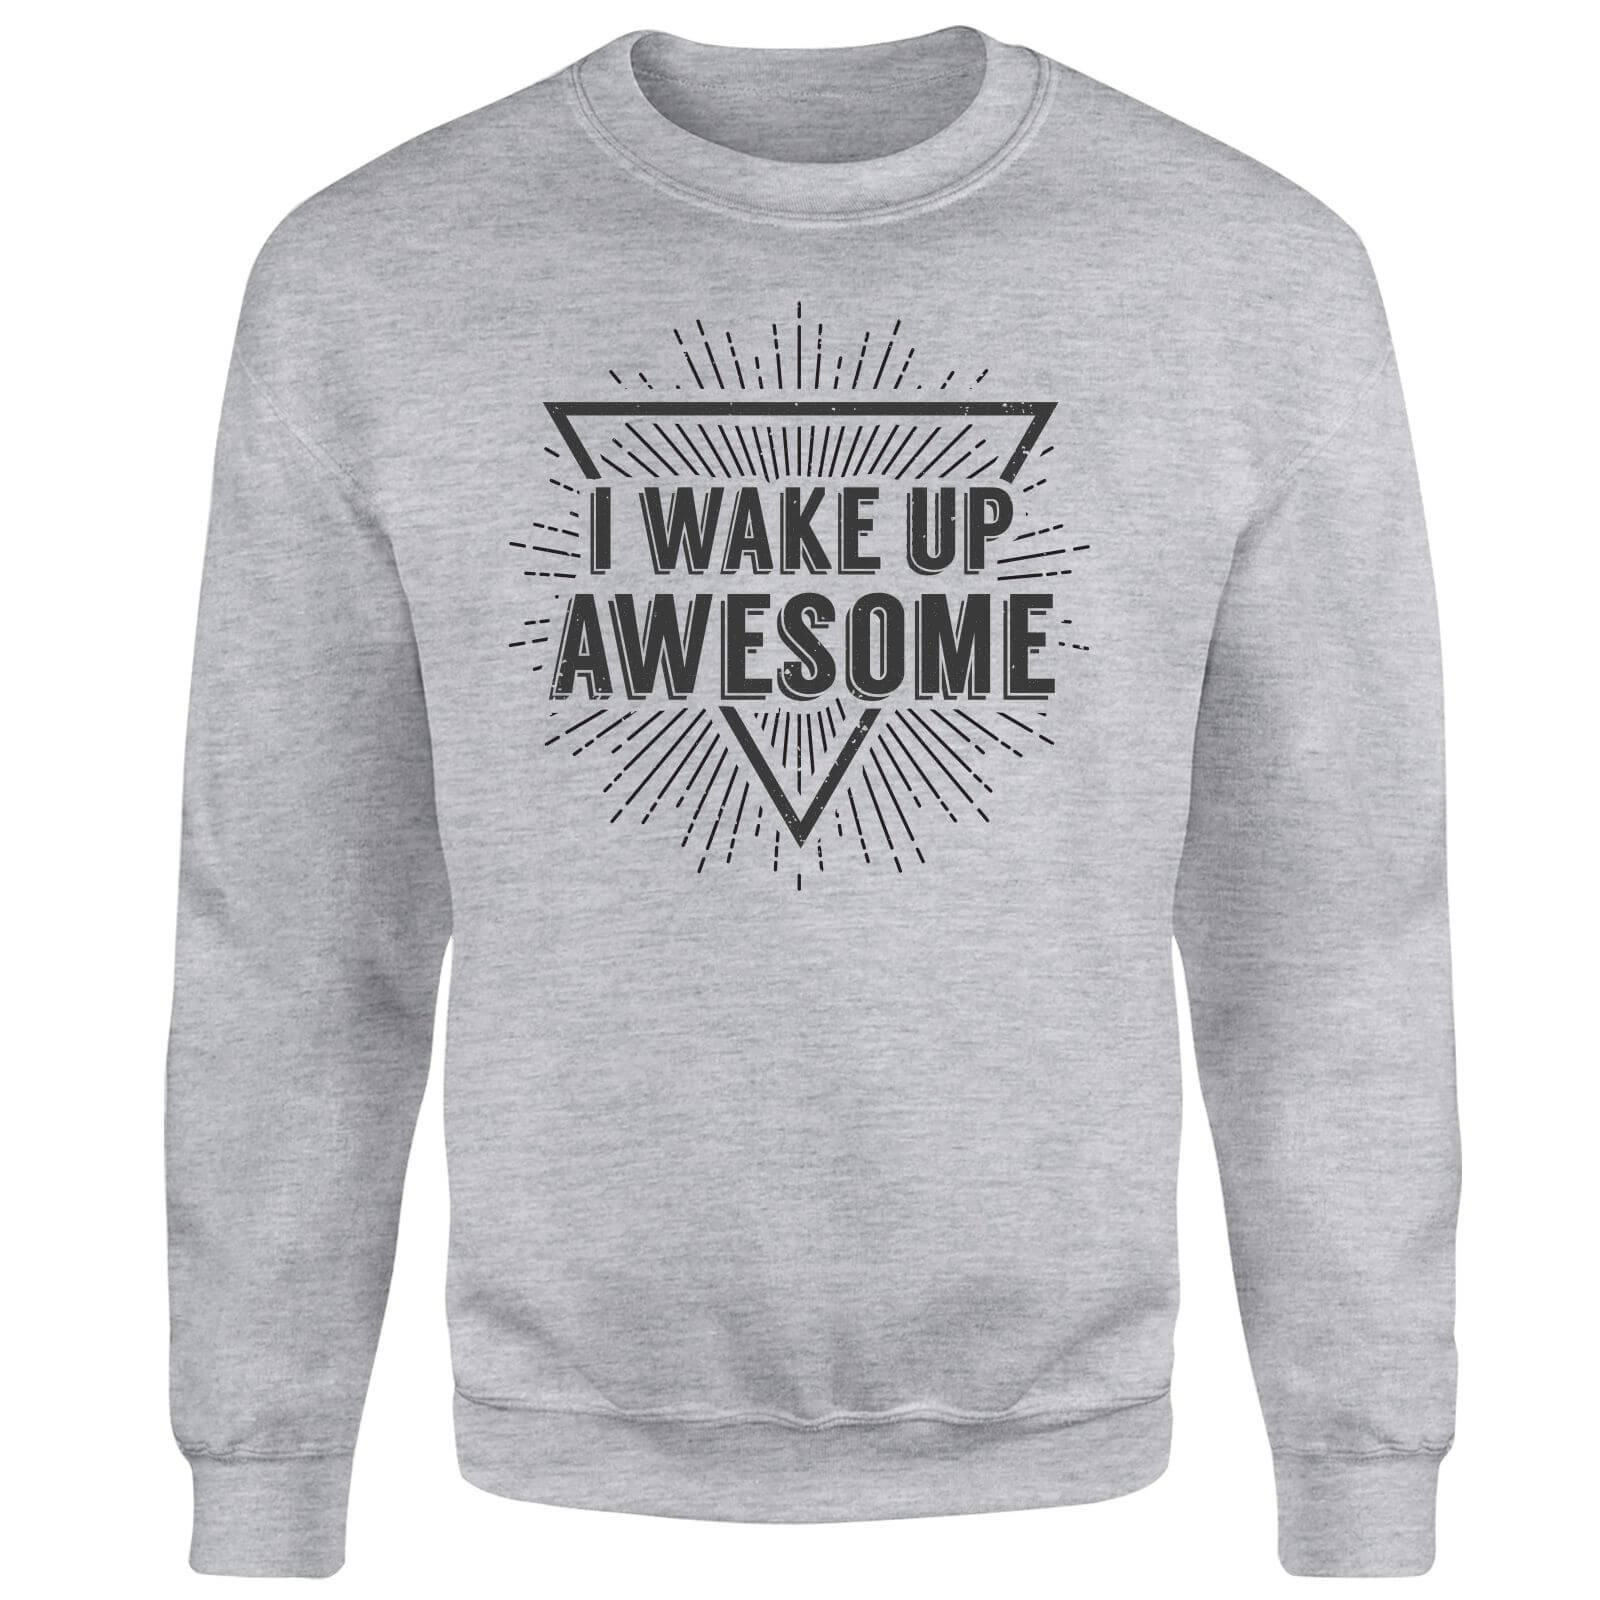 I Wake up Awesome Sweatshirt - Grey